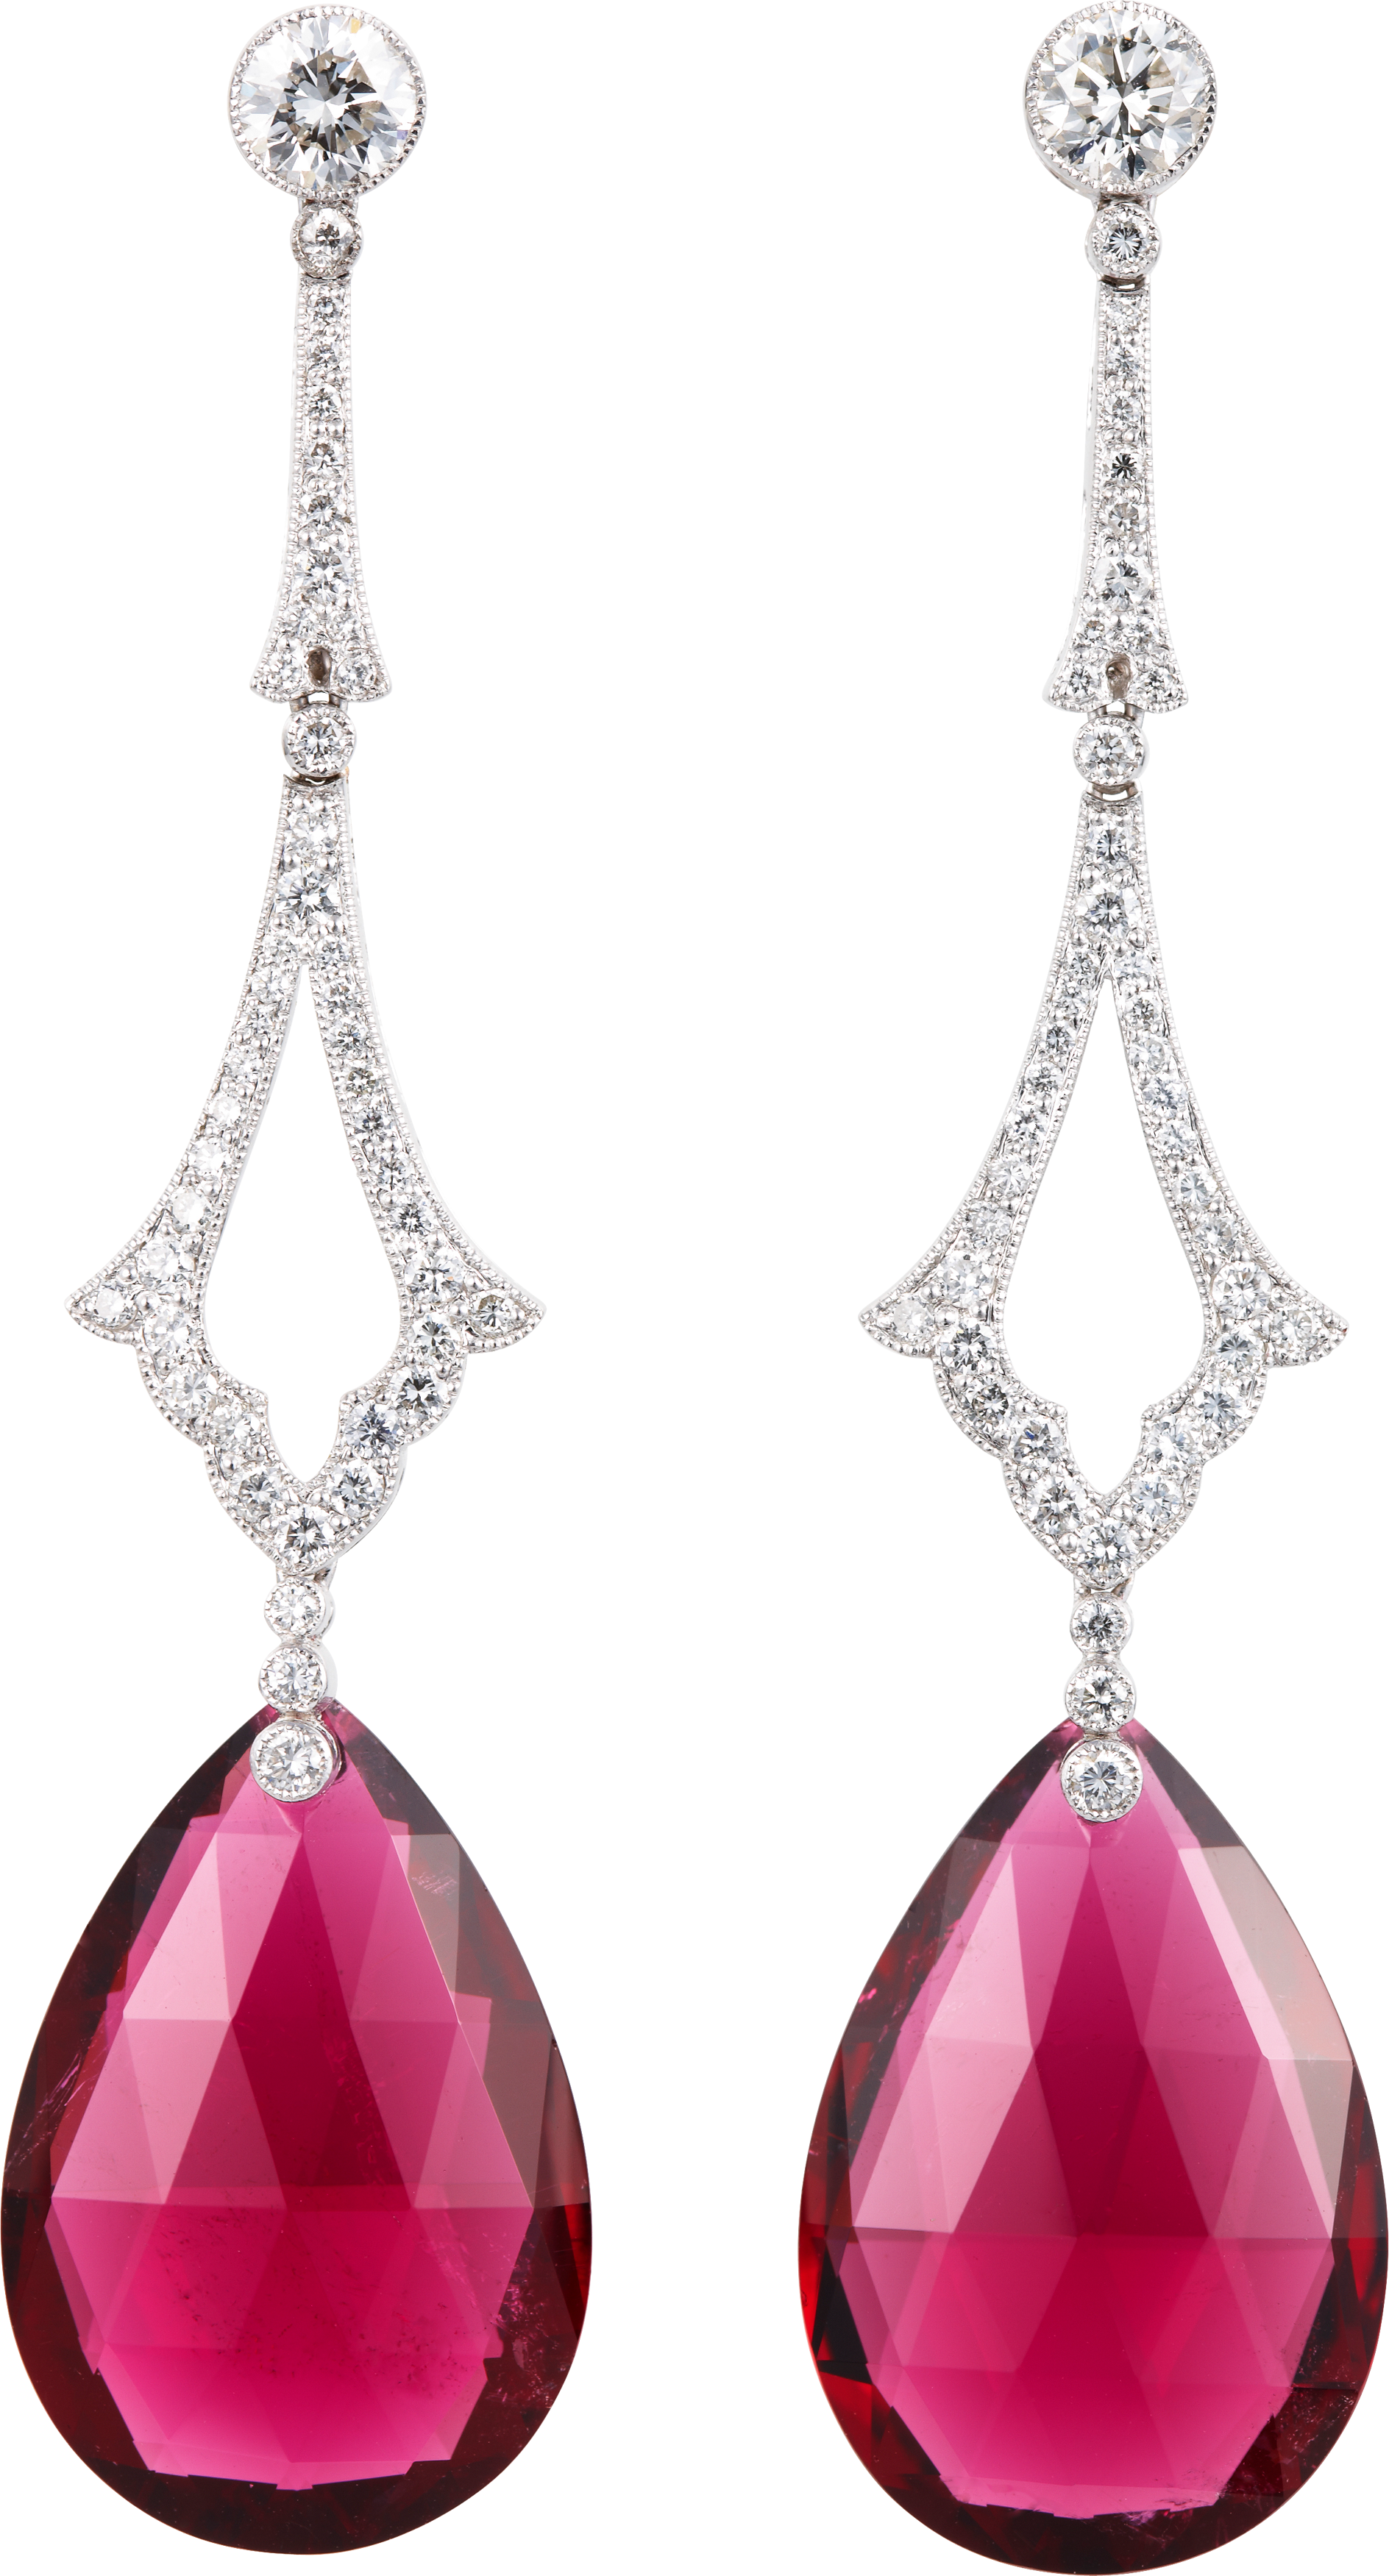 Jewellery Png image #36066